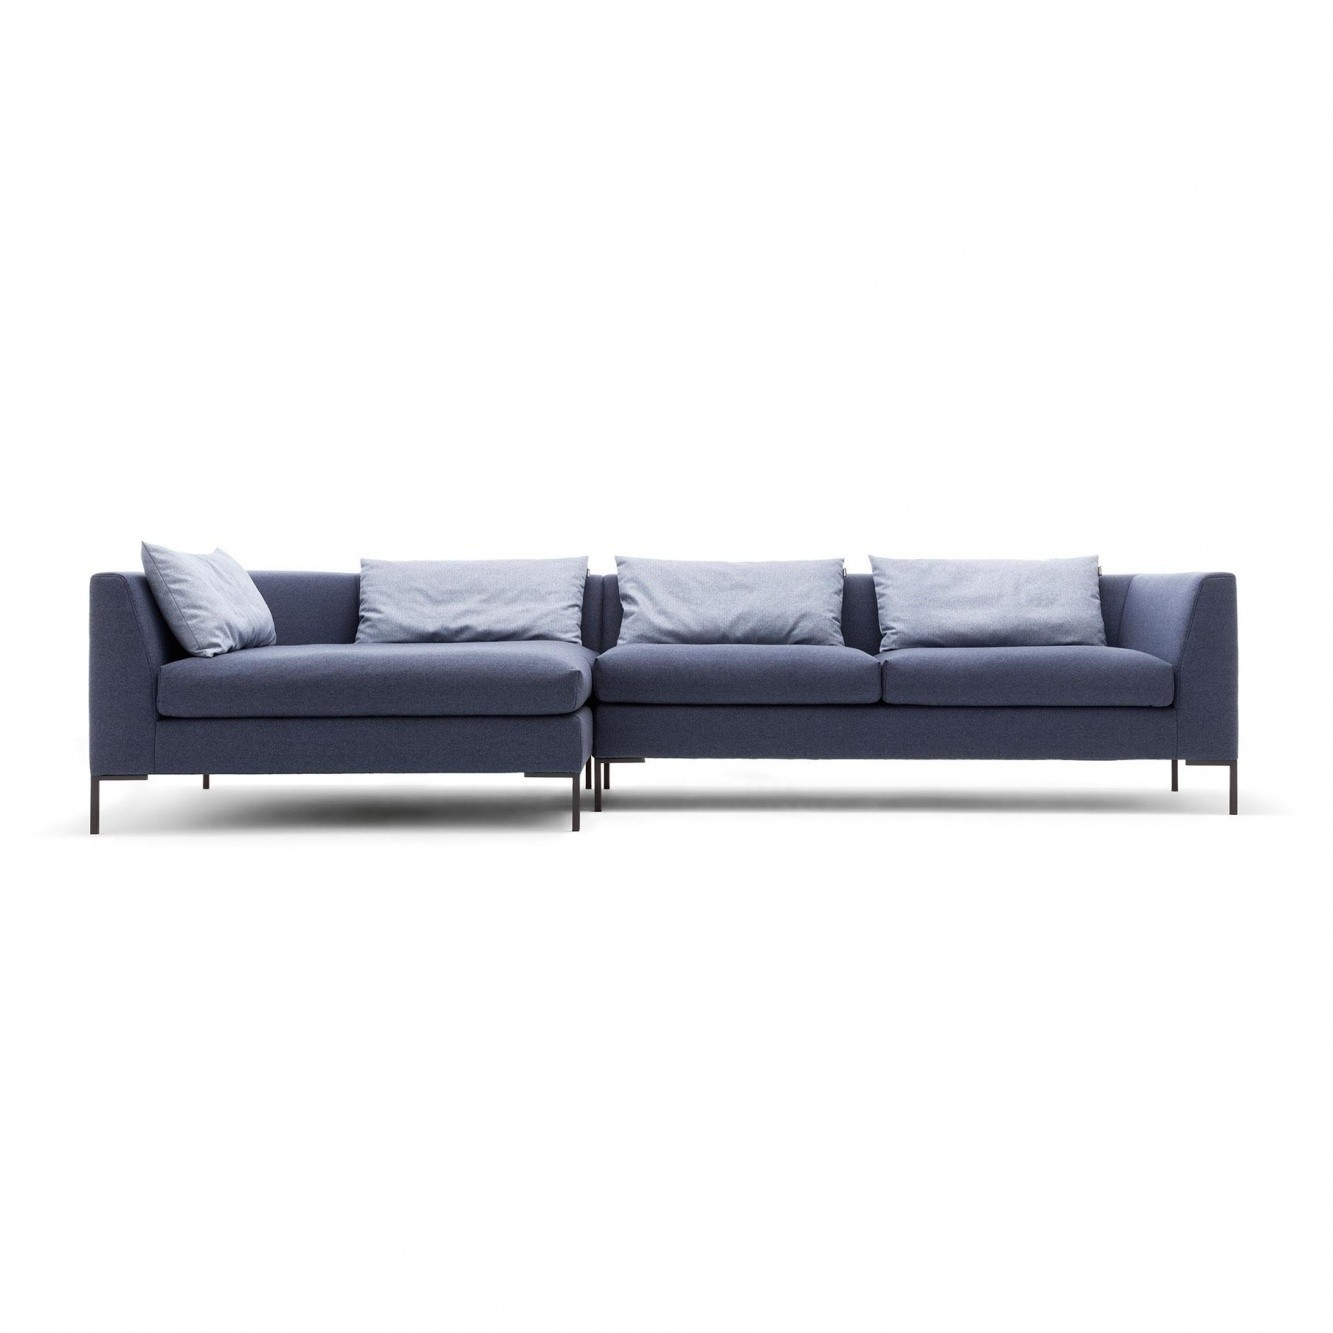 Freistil Ecksofa Freistil 165 Sofa